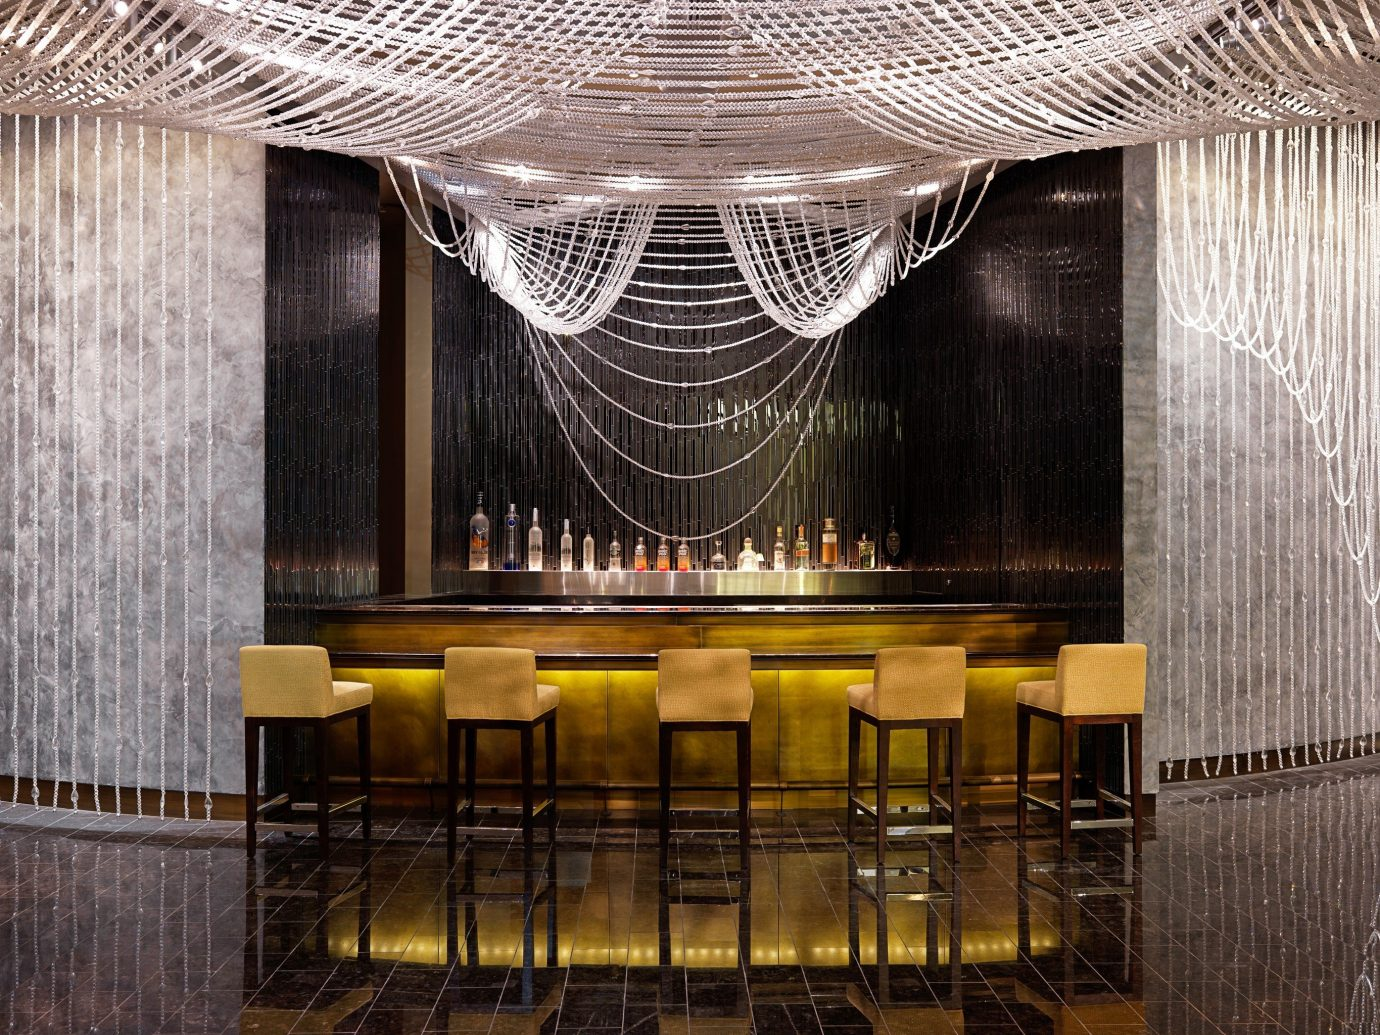 Hotels Architecture interior design lighting ceiling wood stage Lobby window covering Design